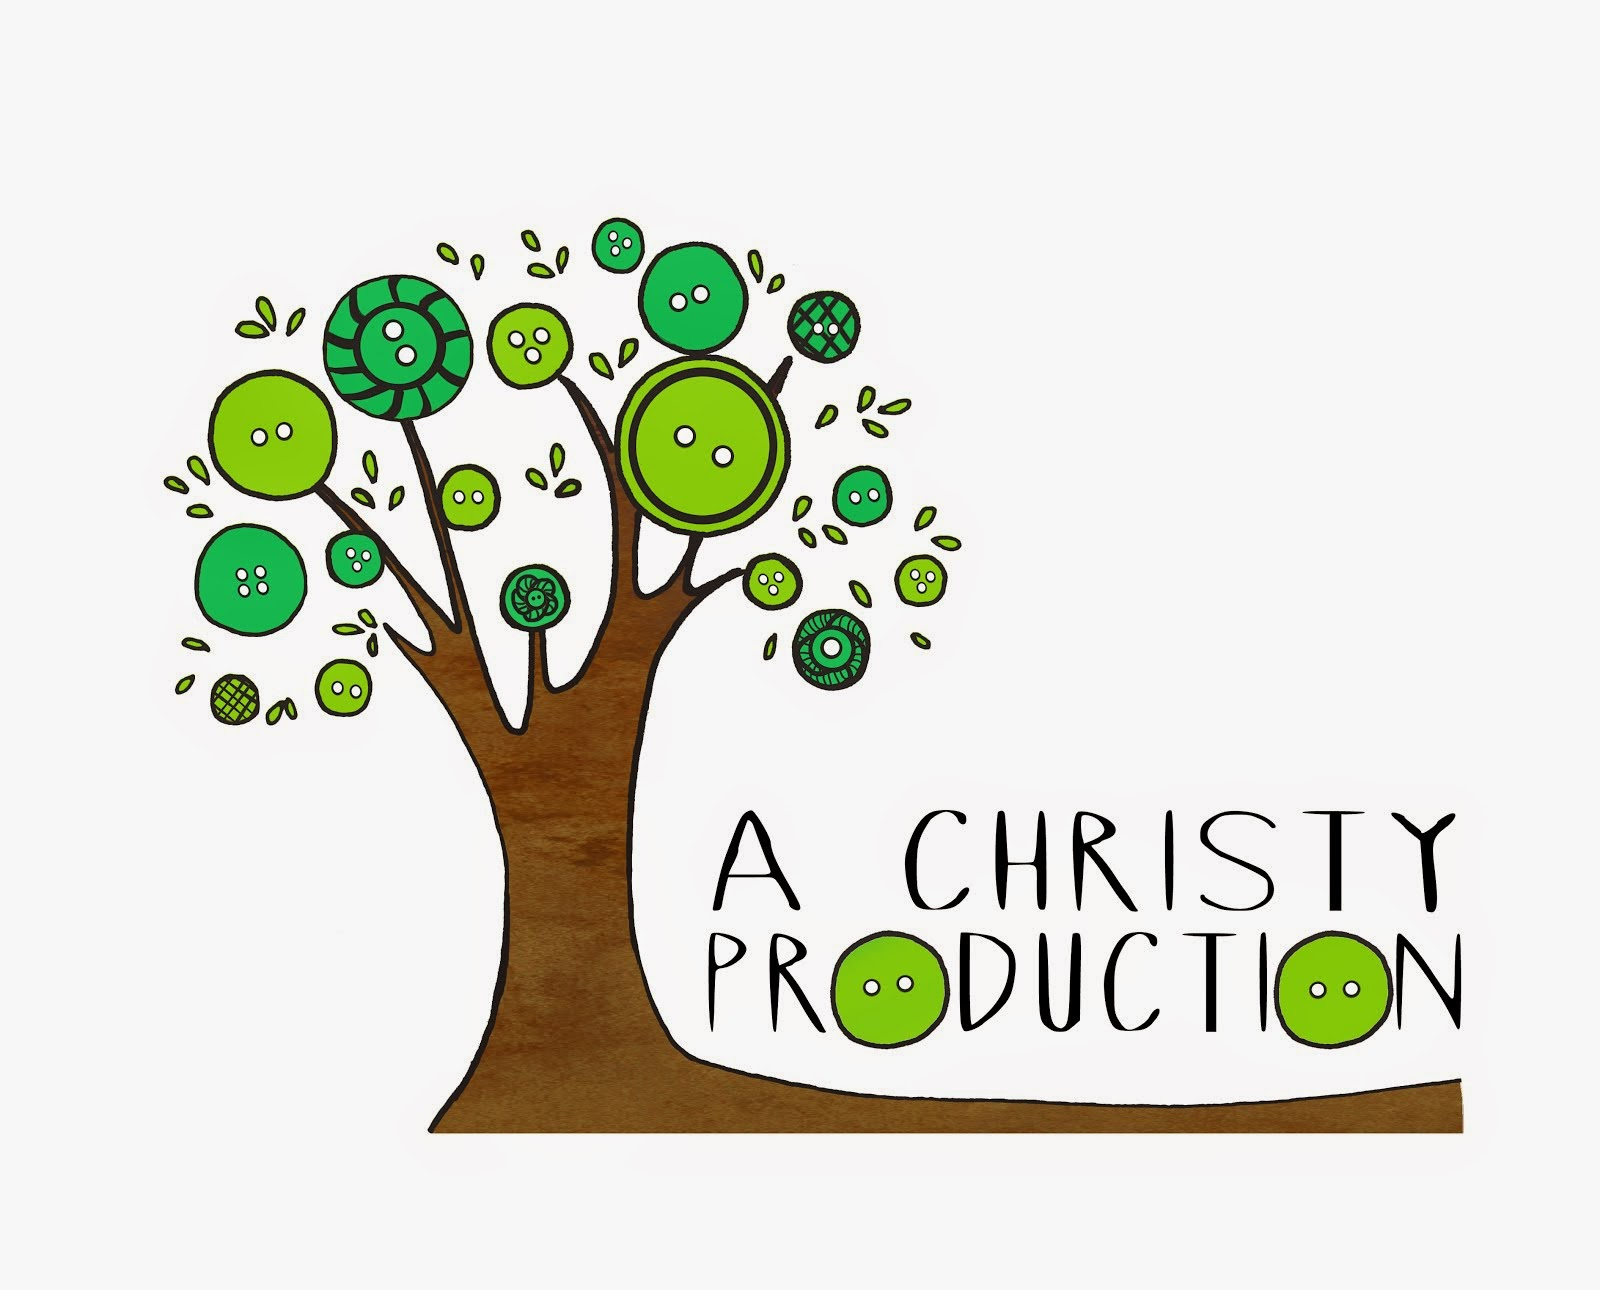 A Christy Production